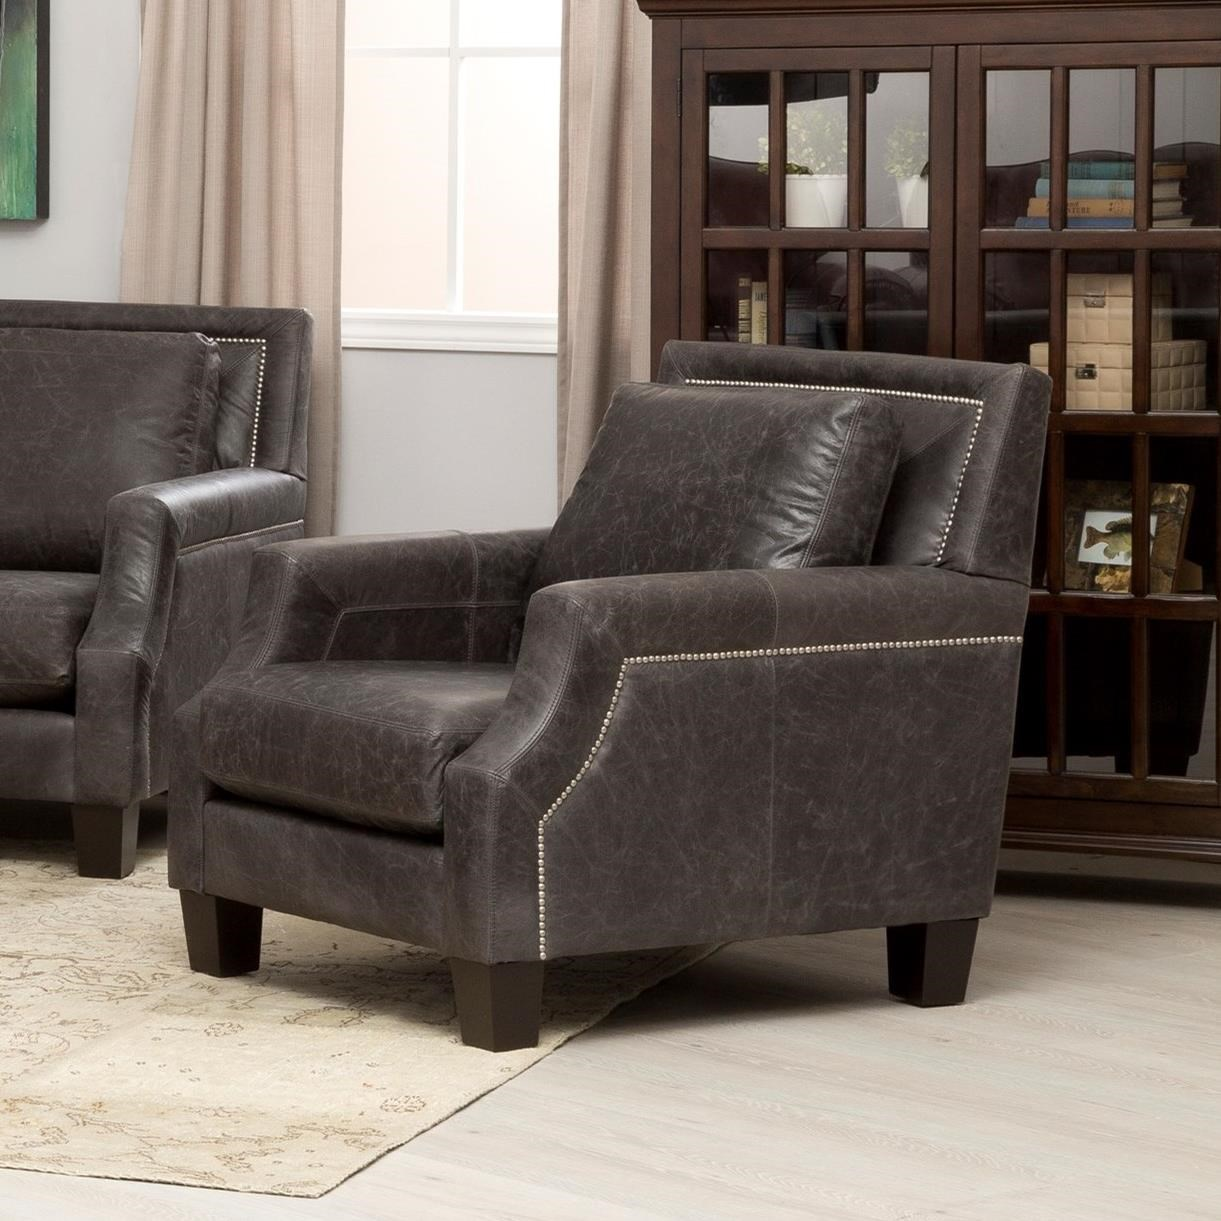 2135  Chair by Decor-Rest at Stoney Creek Furniture